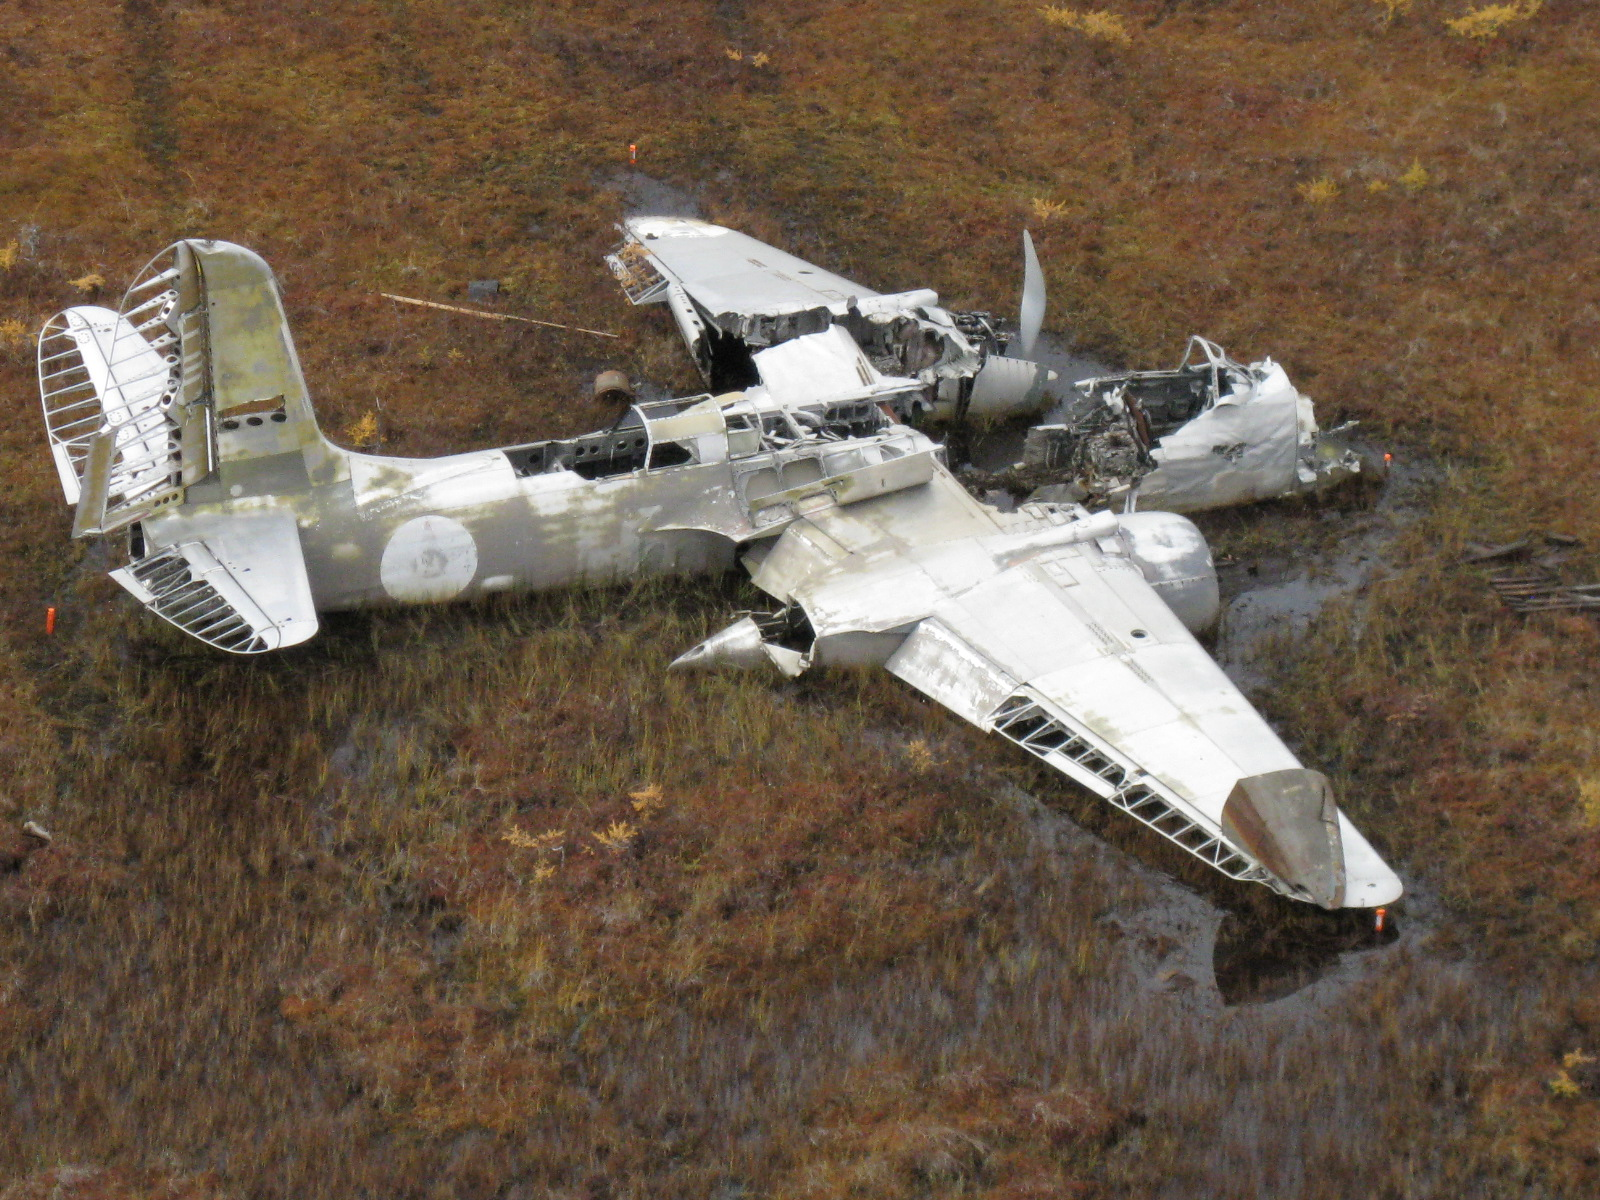 The A-20 Havoc at the crash site in Labrador Canada